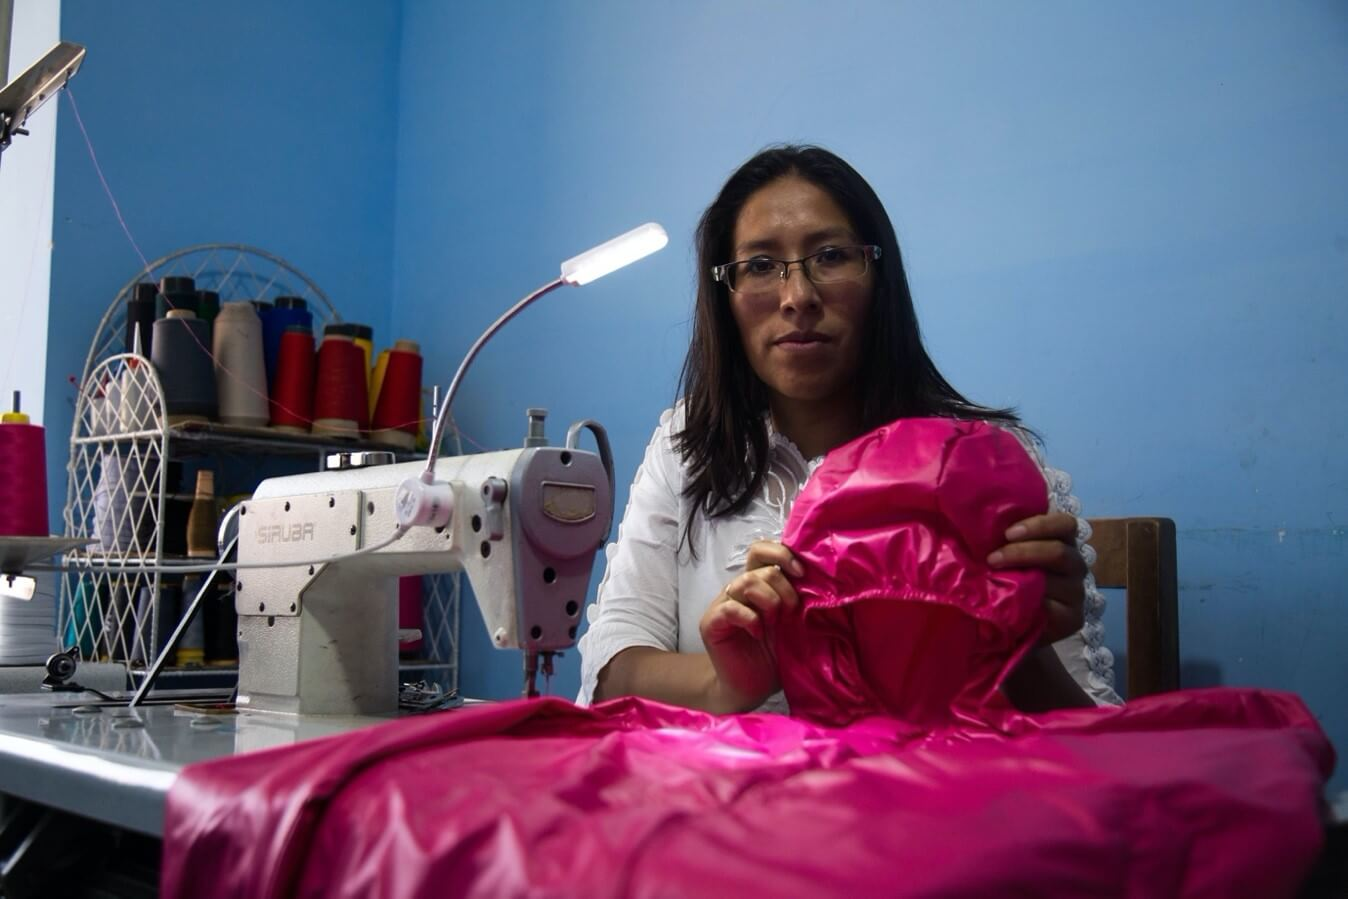 When the pandemic closed schools and sporting events, demand plummeted for the uniforms Carolina Cano Huanca produced through her garment business in La Paz, Bolivia. With support from Accion's partner BancoSol, Carolina quickly pivoted to produce personal protective equipment to help her community stay safe.